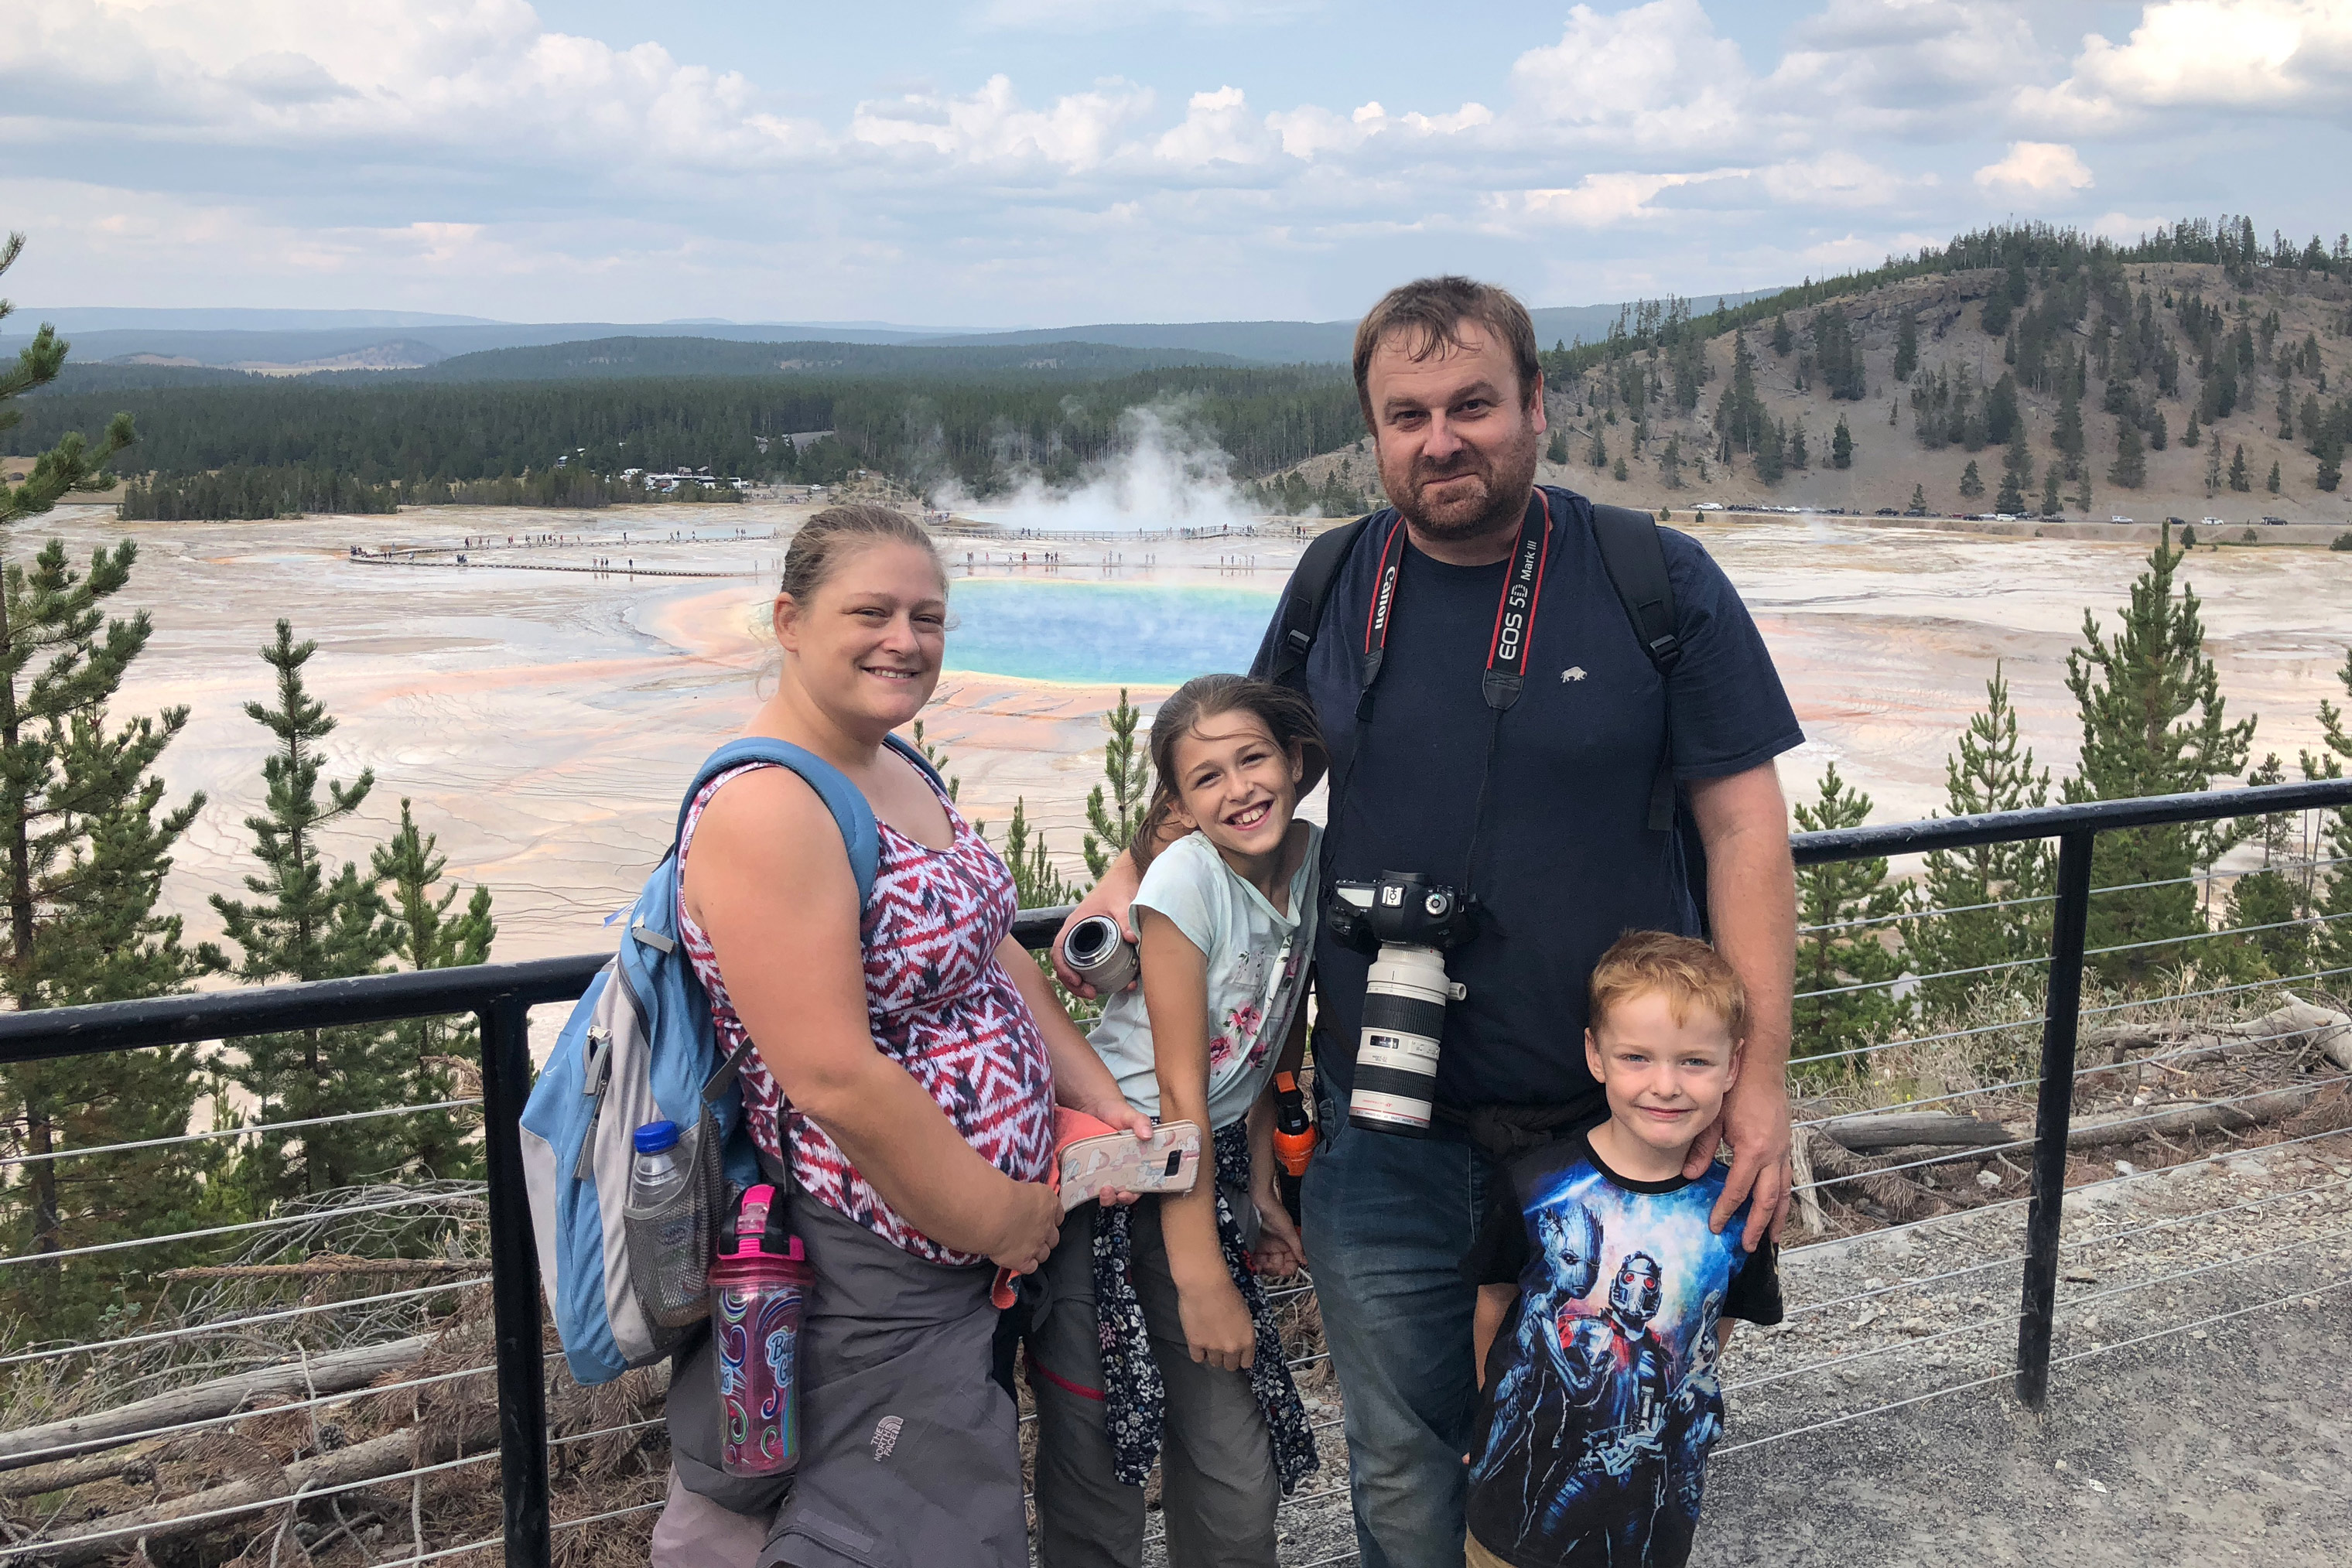 Forrest Fenn treasure searcher Jono Jones and his family at Yellowstone National Park.